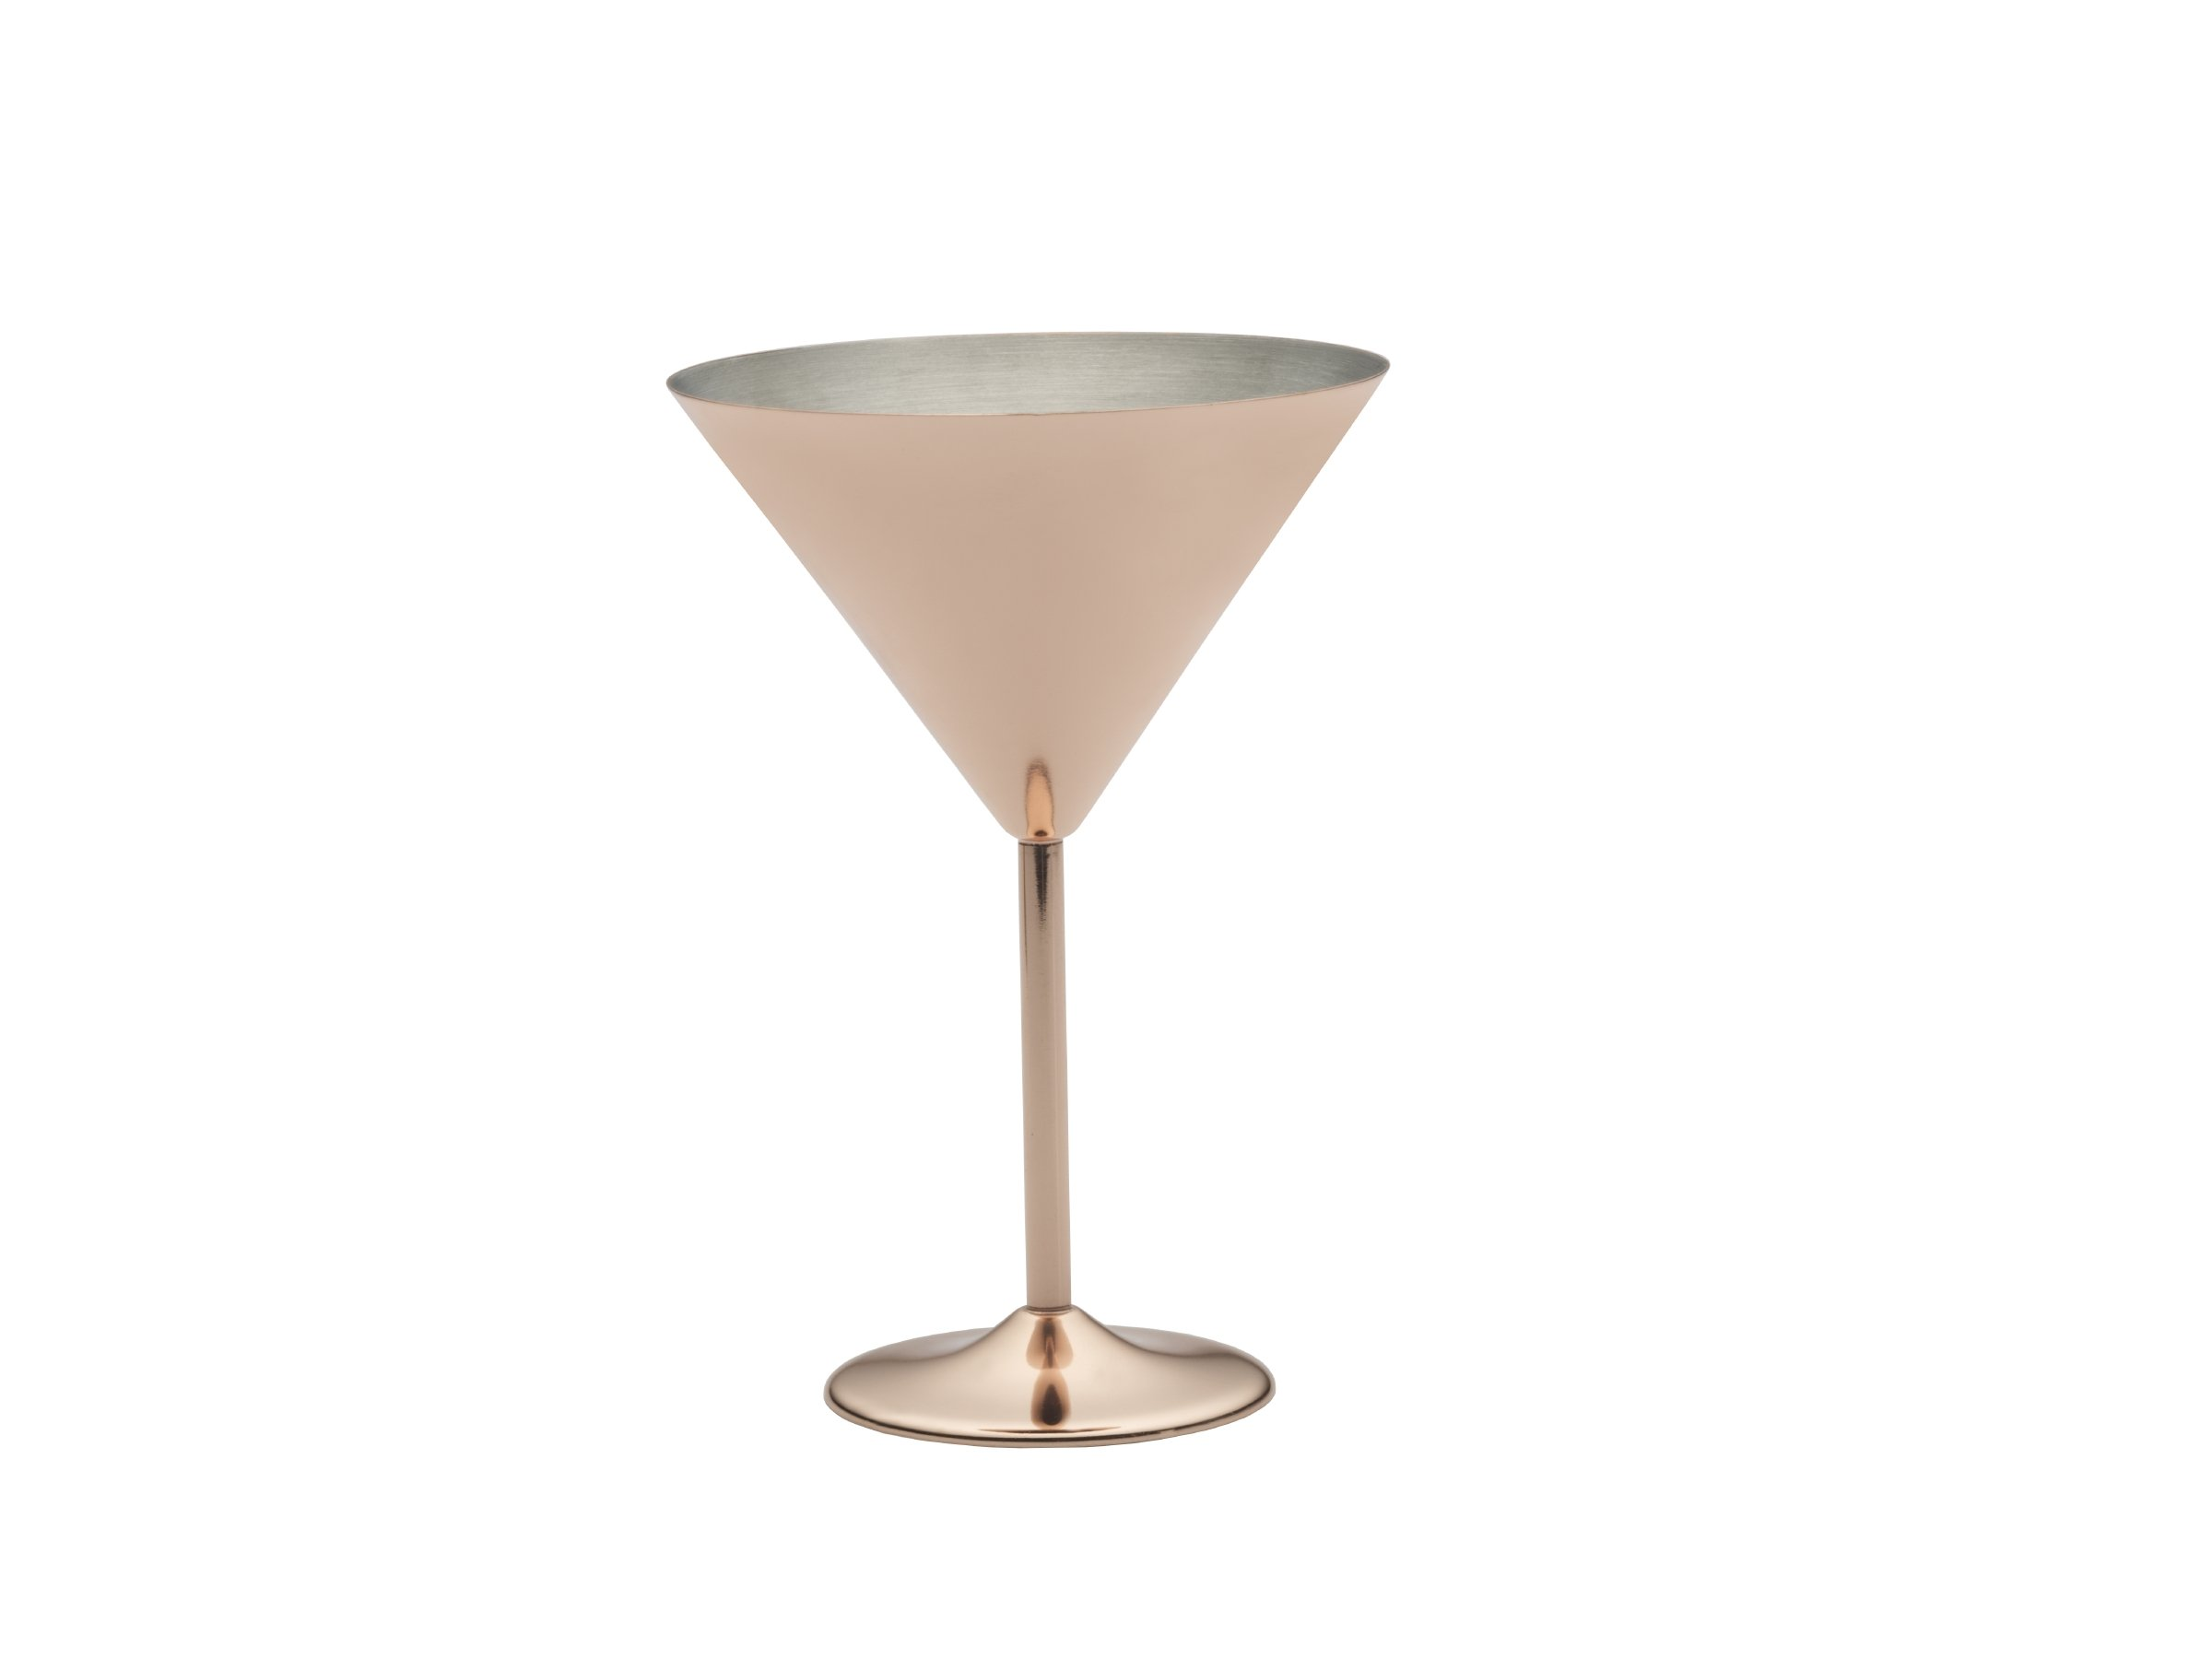 Towle Living Modernist Copper Plated Martini Glass, 12-Ounce